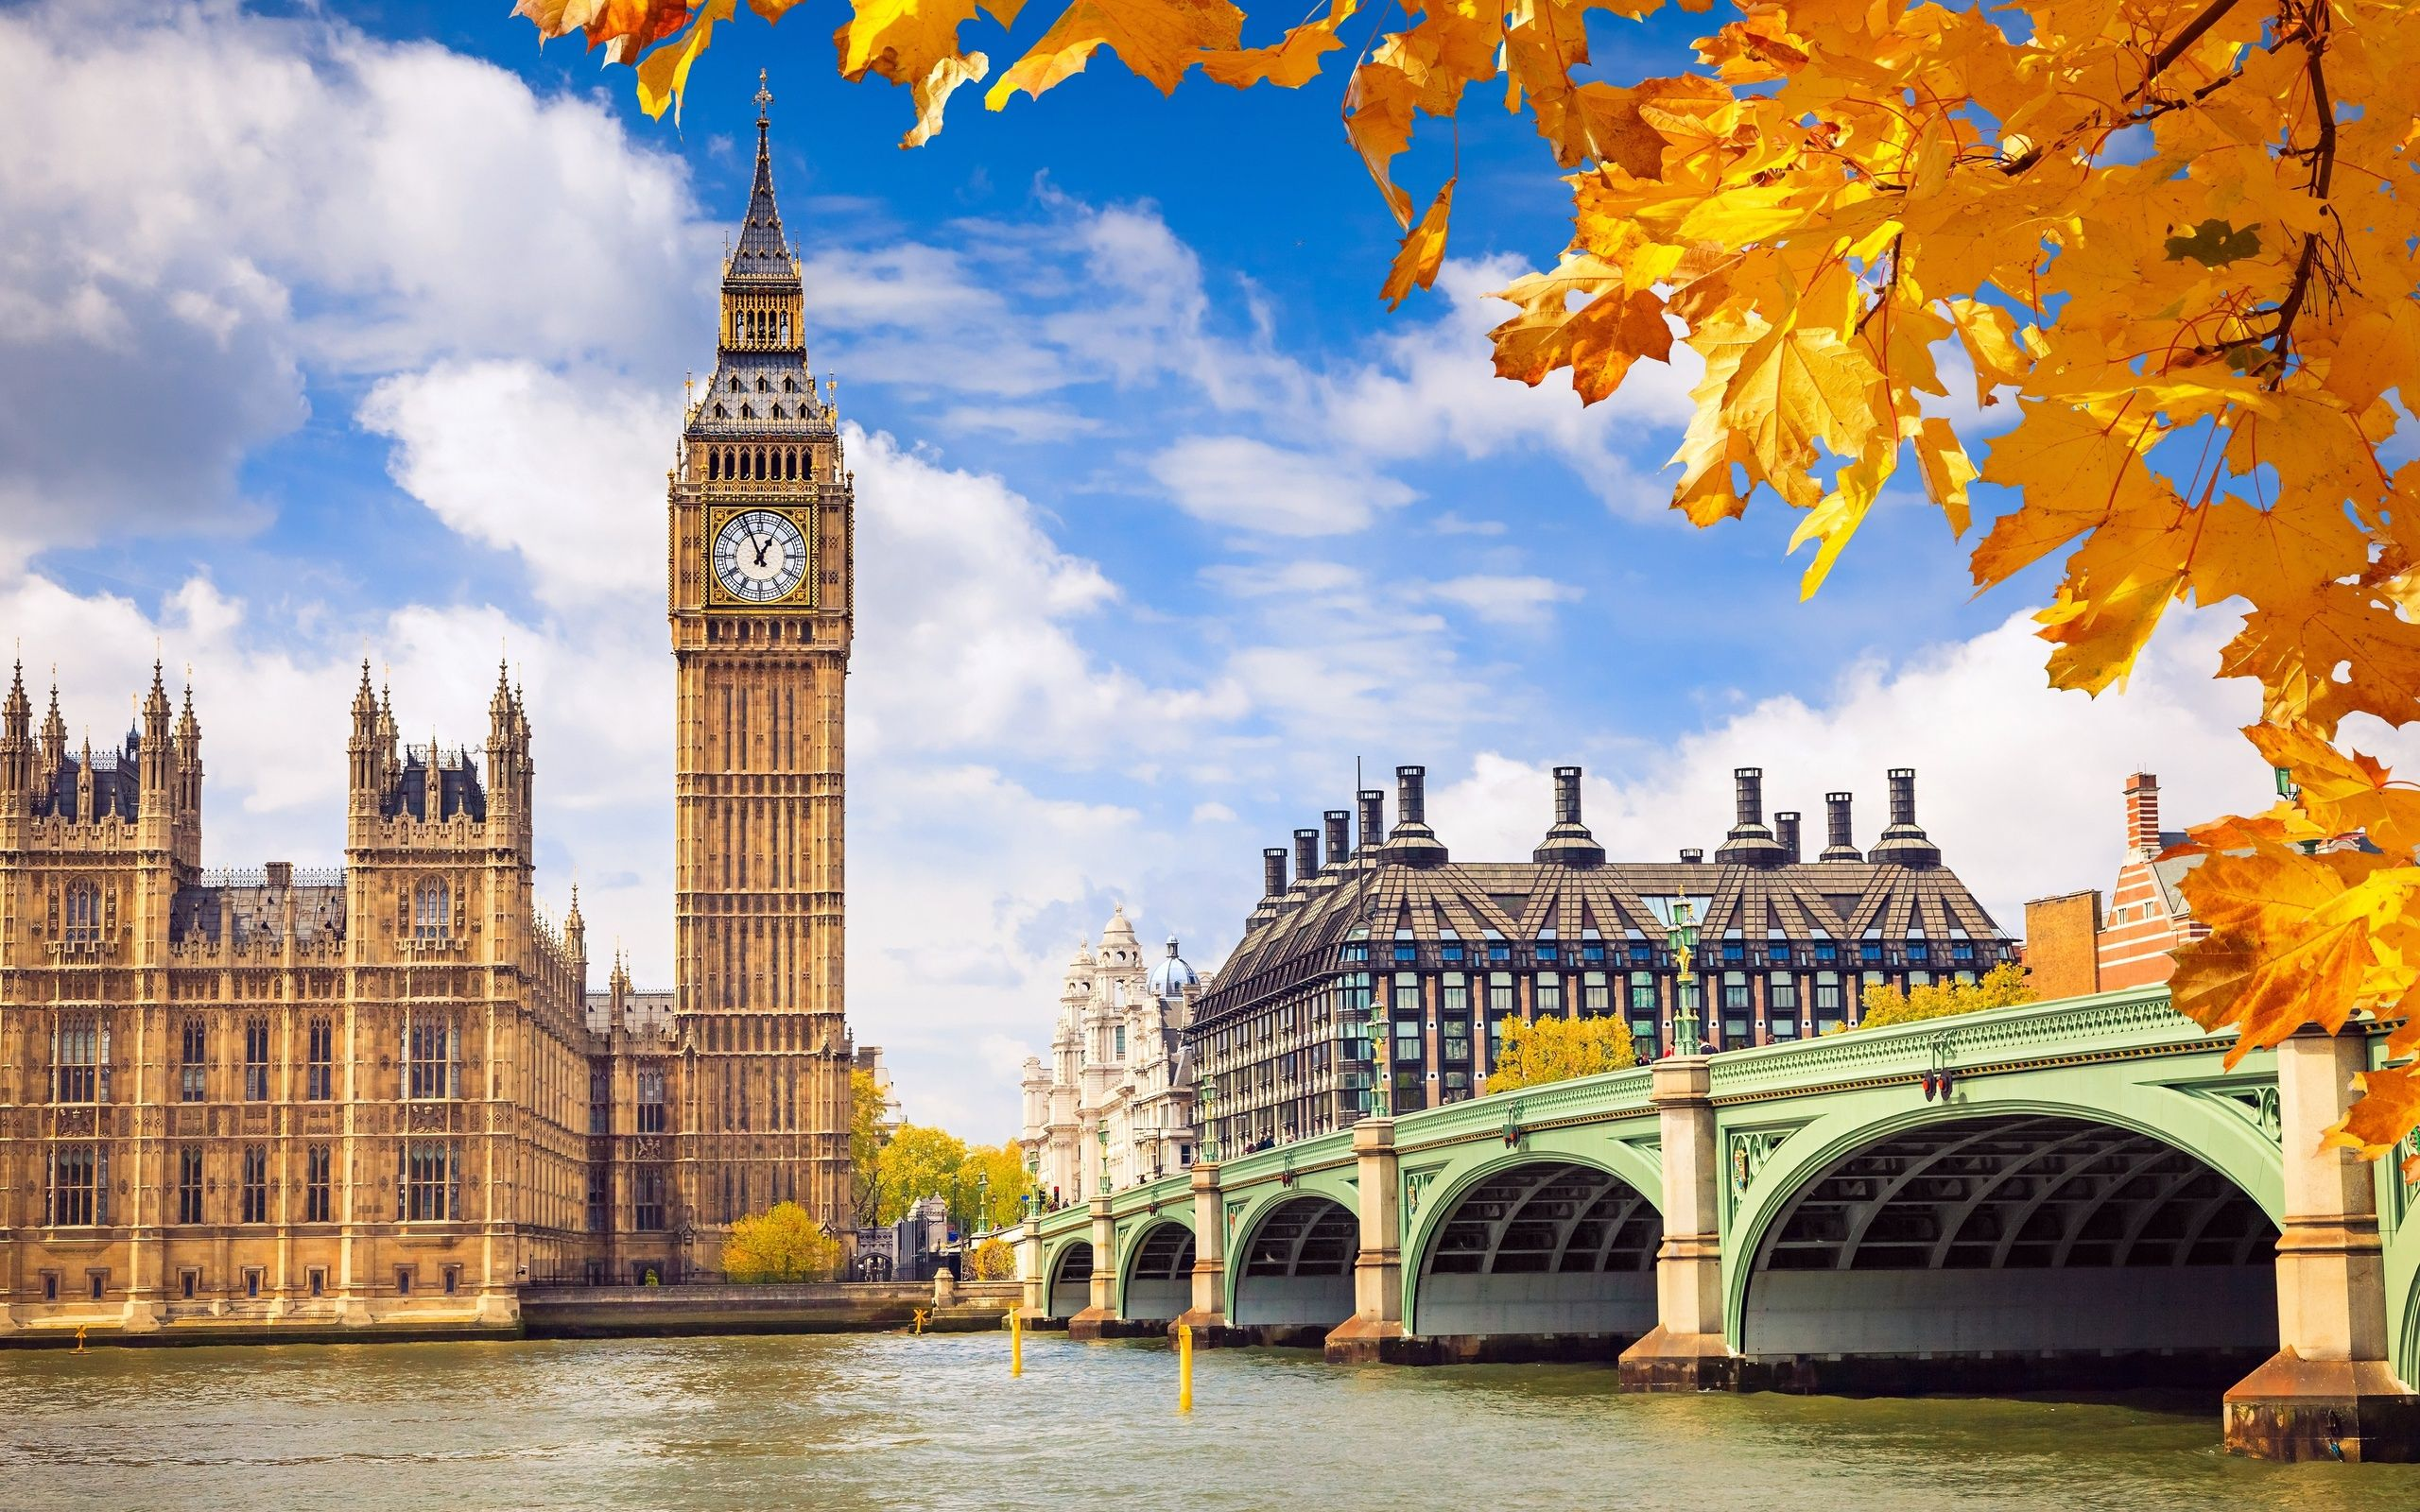 wallpapers of london, london england wallpaper